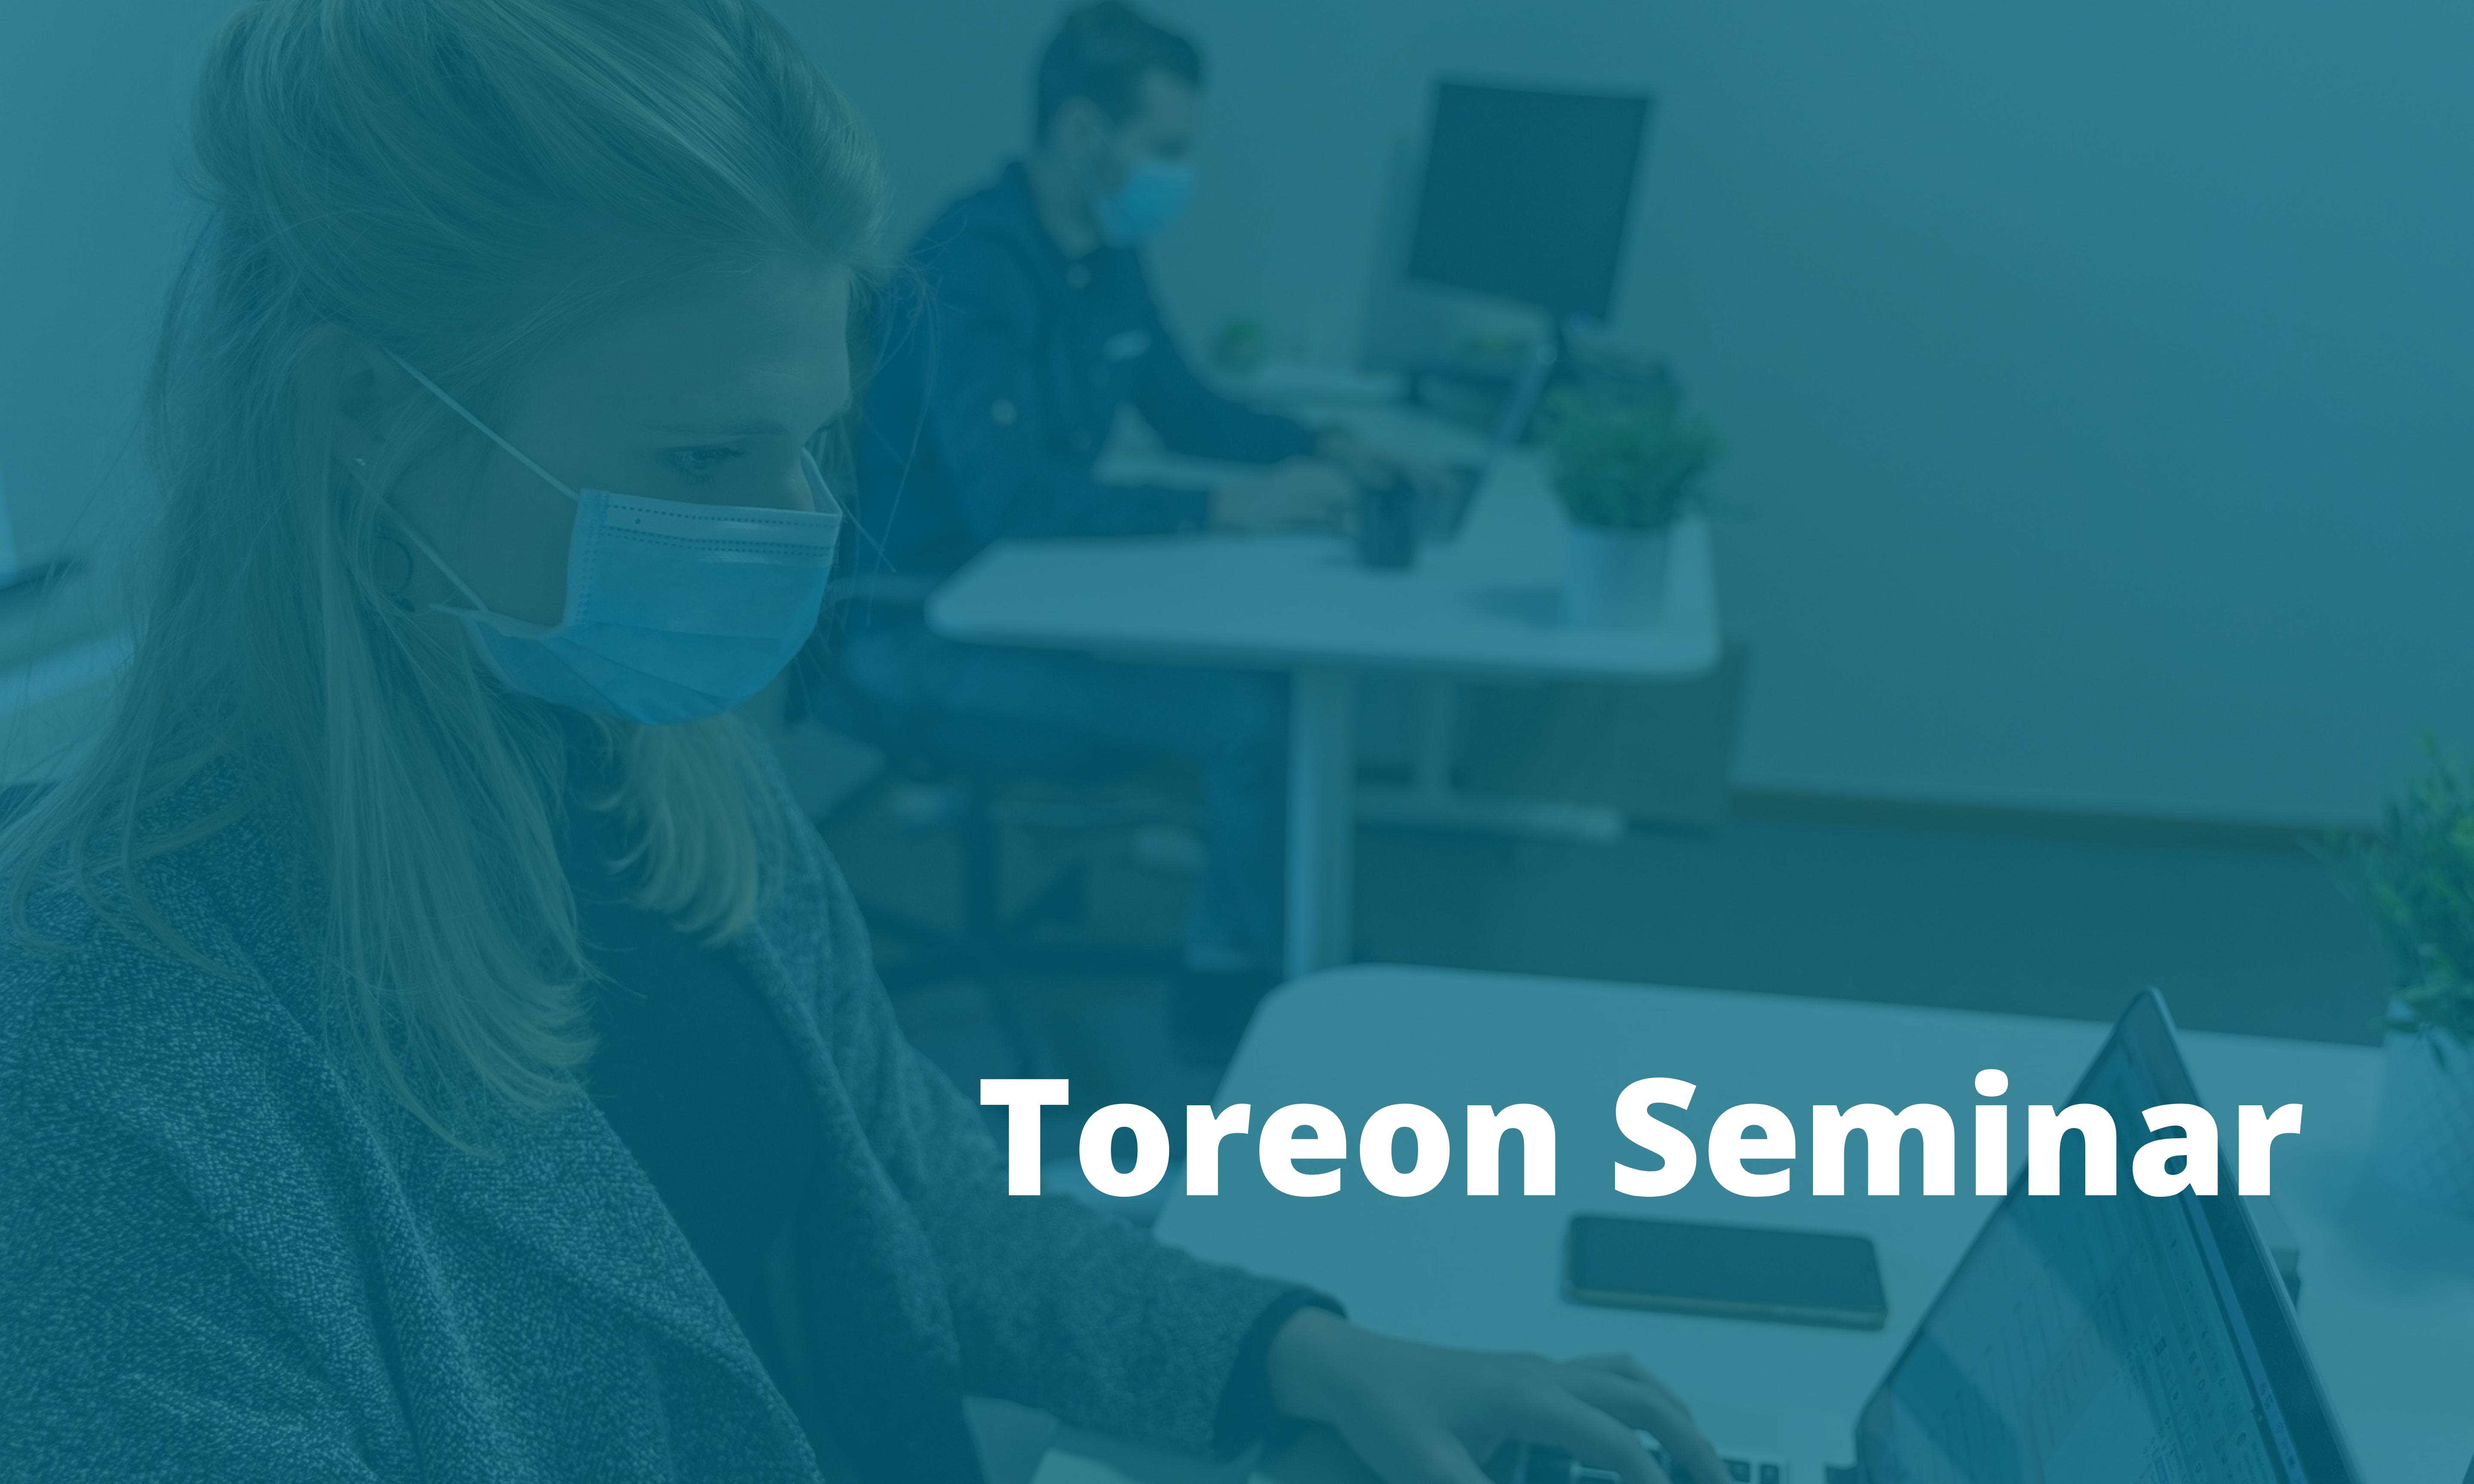 26/05/21 – Toreon Seminar : Cybersecurity Grants for Flemish SME